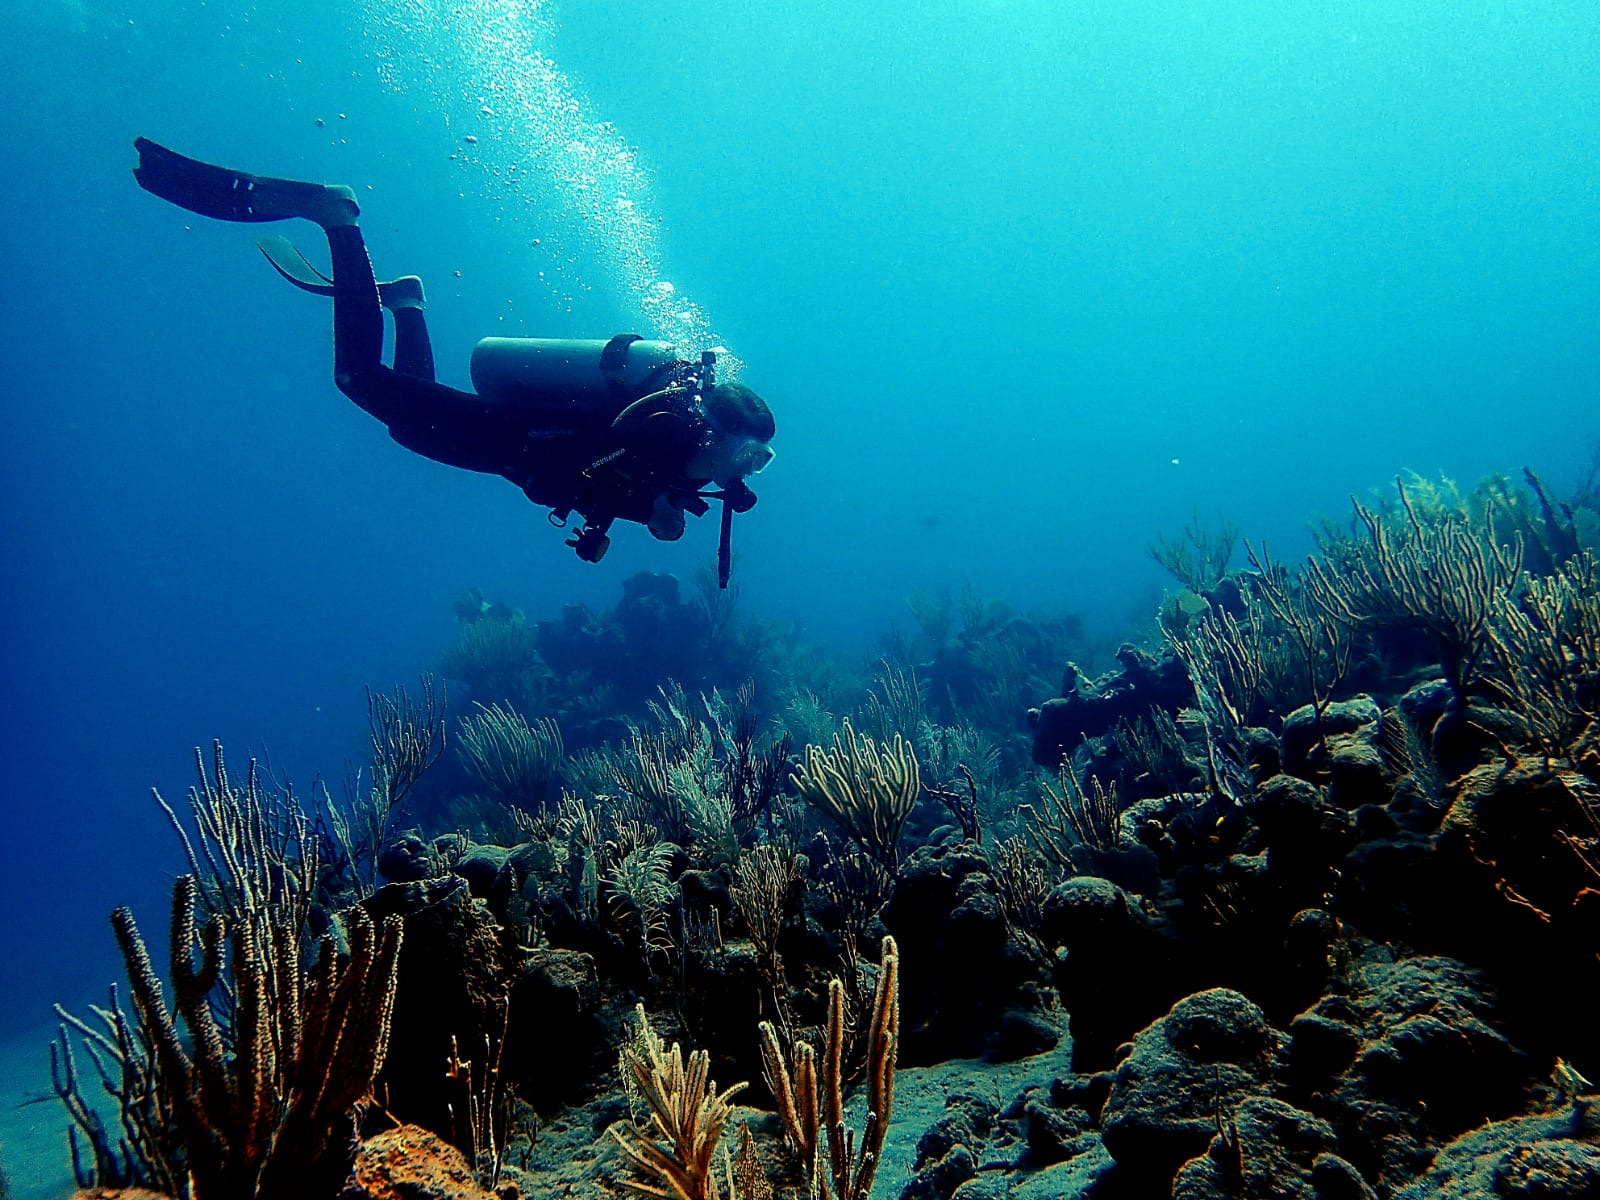 Diver in Coral